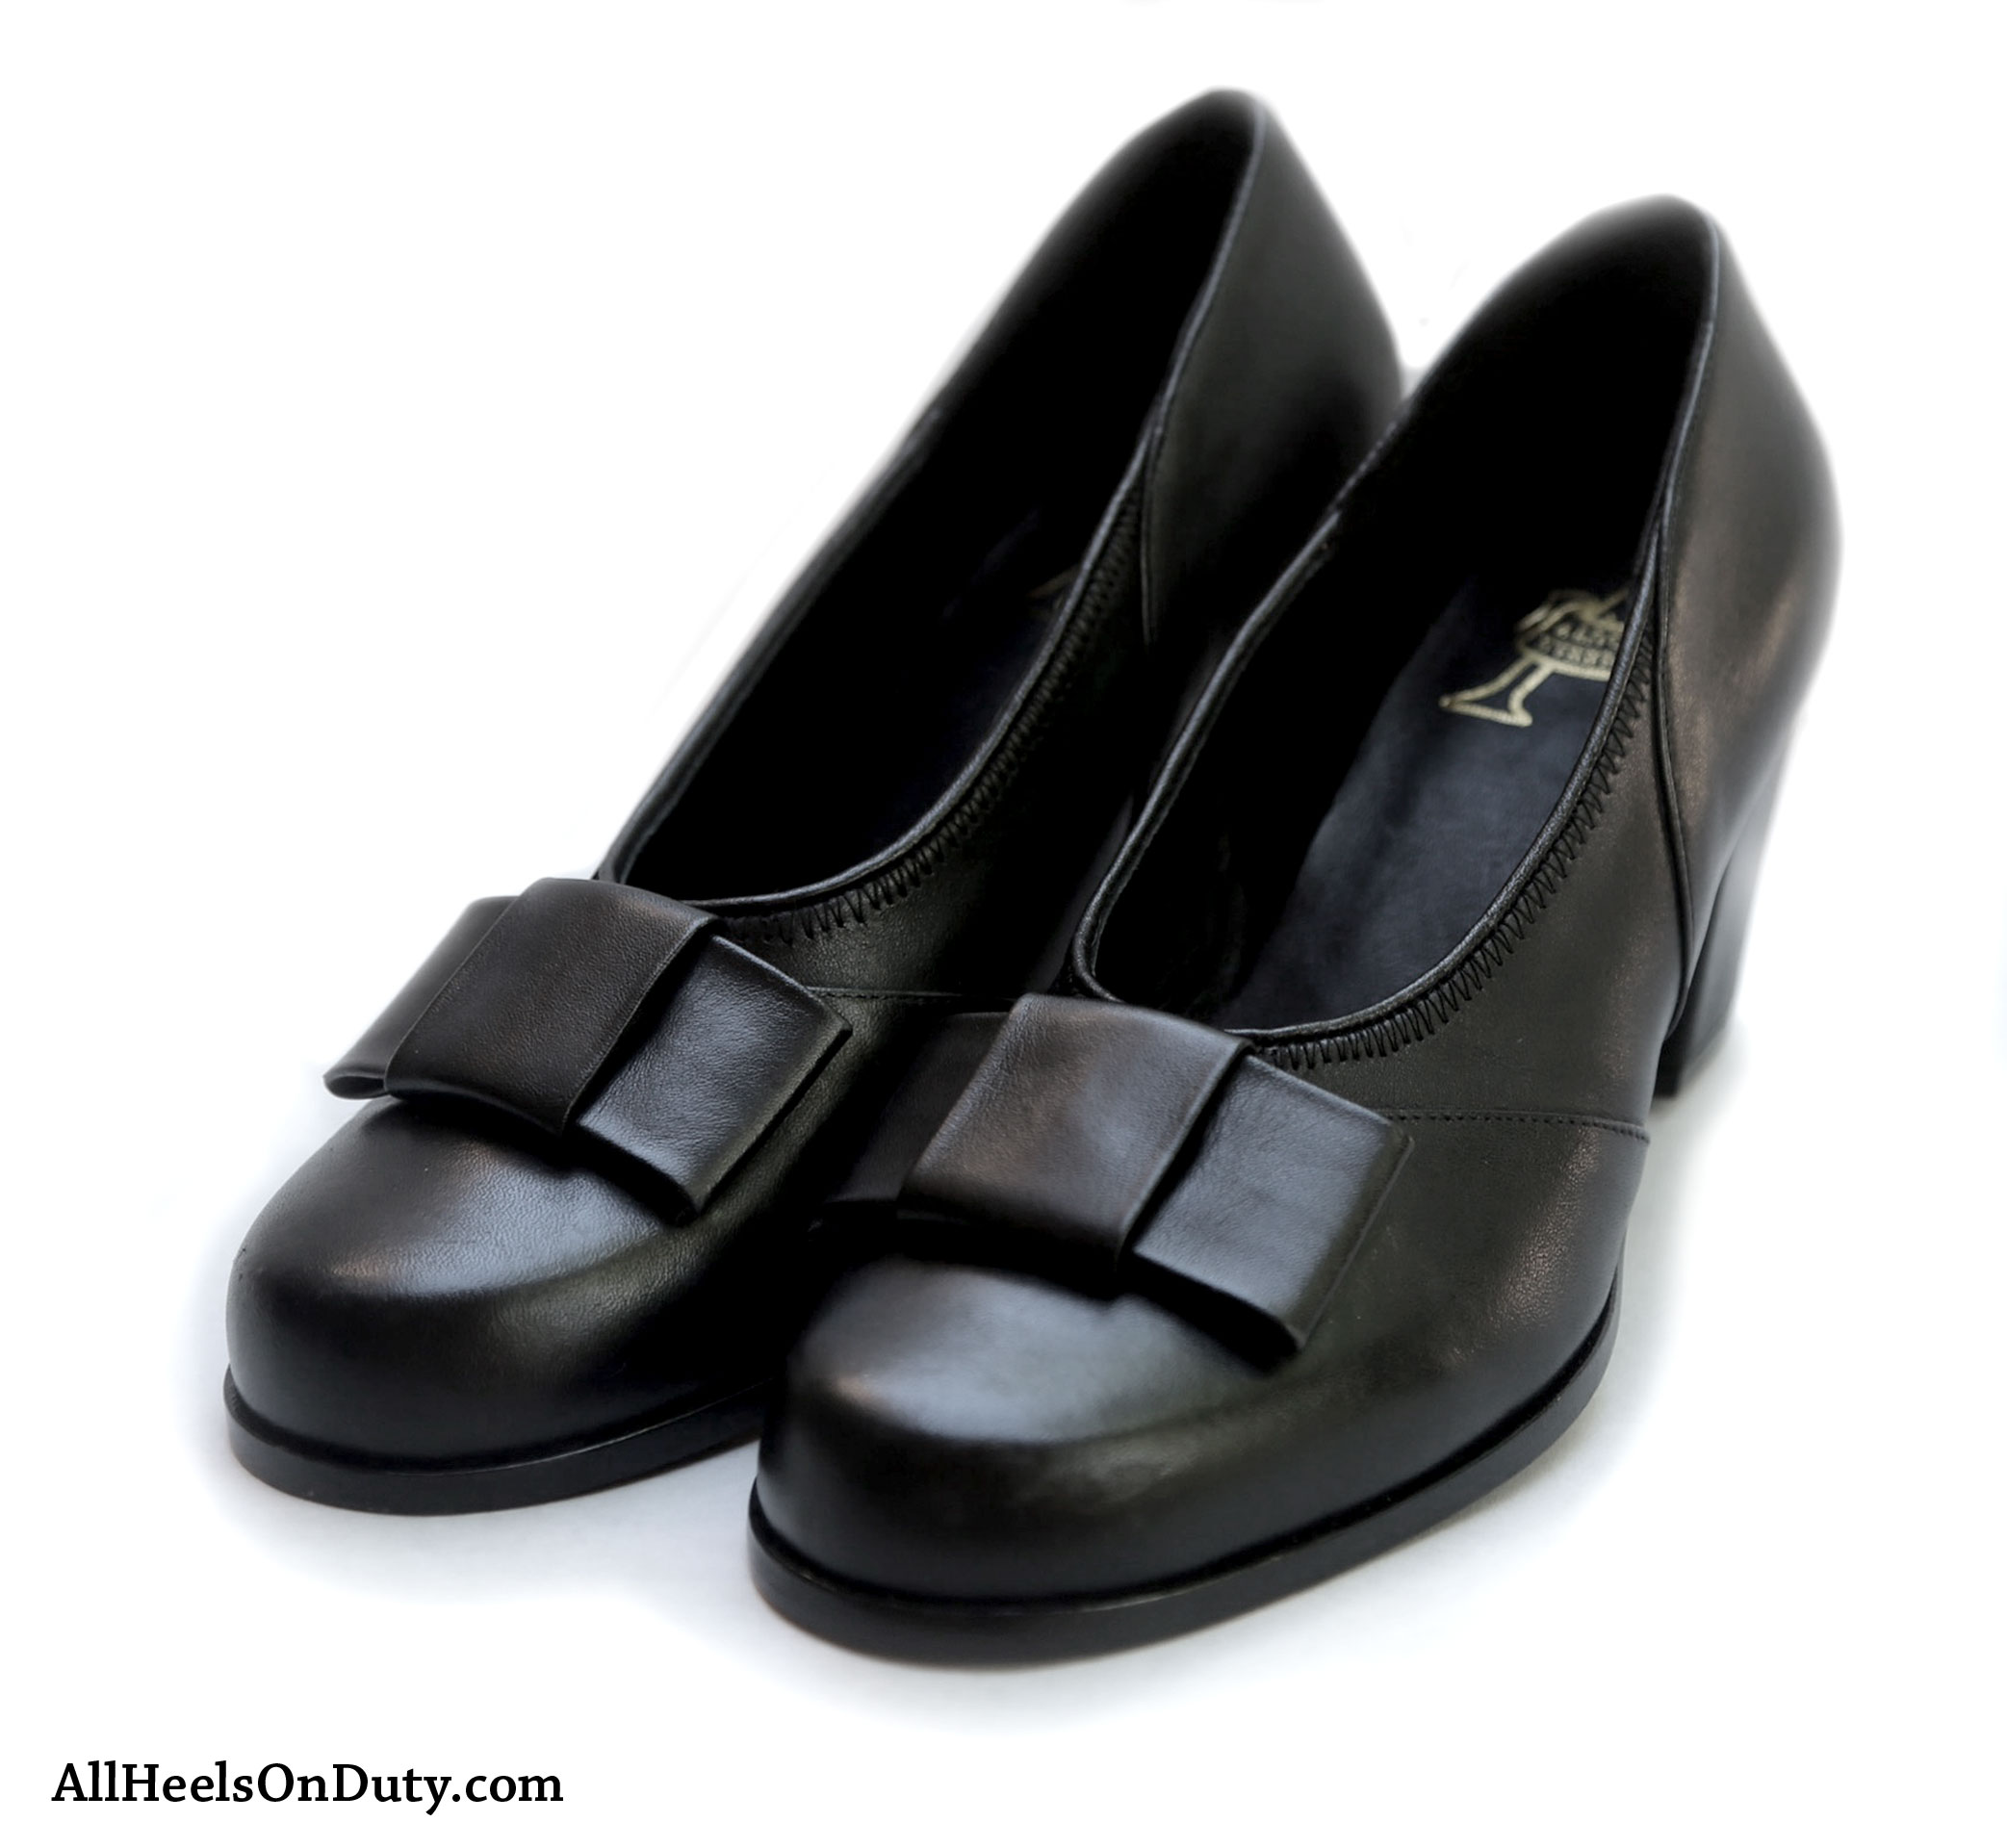 801c522589555 1940s Black Bow Pumps - Make Way for All Heels On Duty!